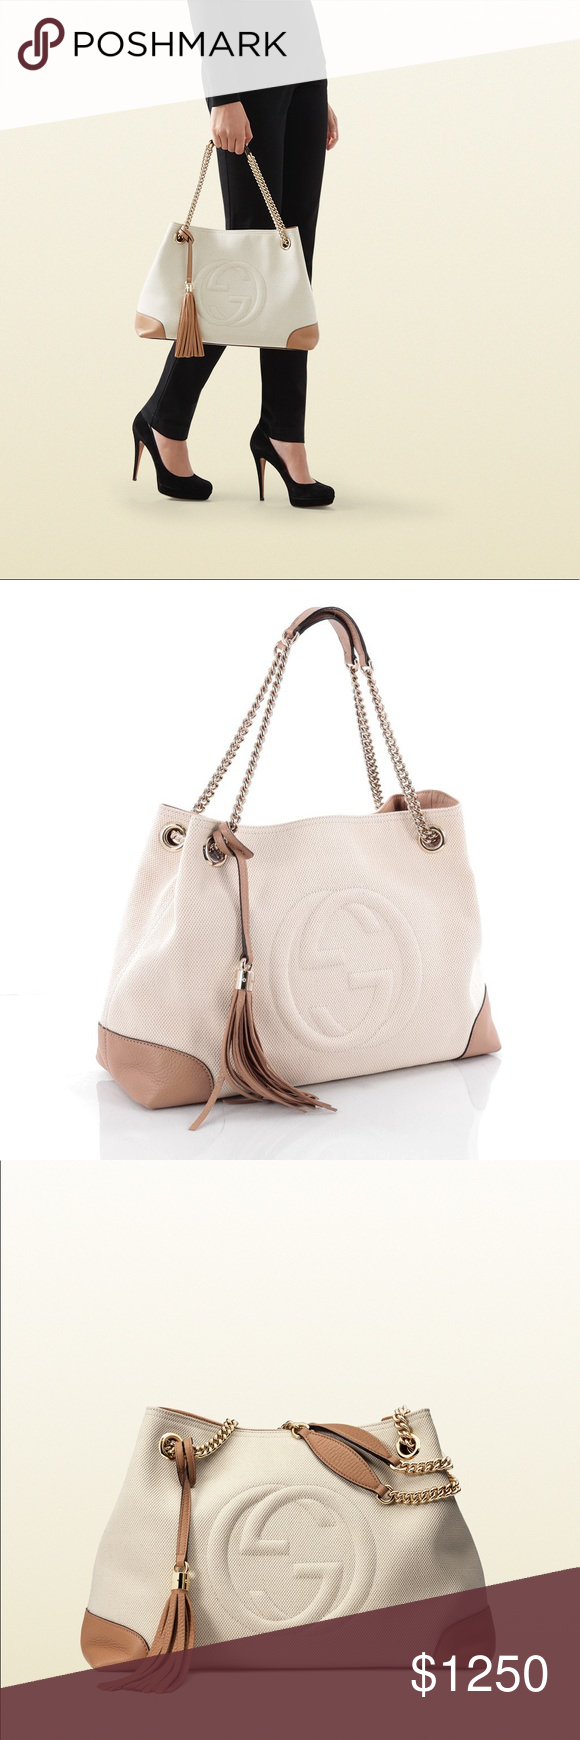 6d7c951106098f NEW Gucci Soho Chain Bag - Discontinued Authentic Gucci Soho Chain Canvas Shoulder  Bag Tote New